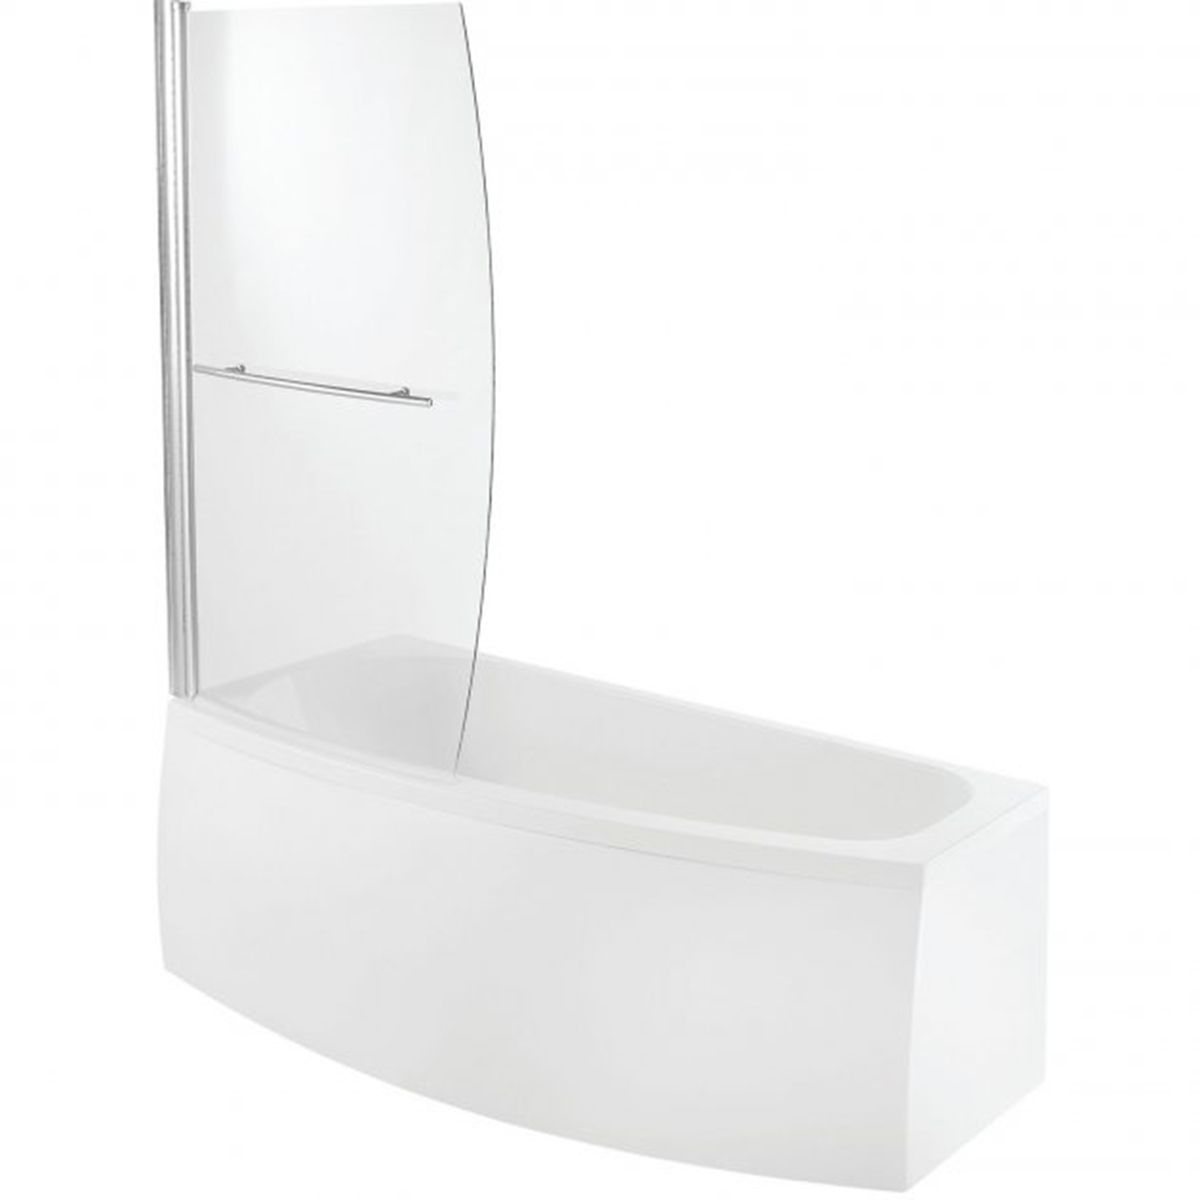 Bathrooms To Love Spacesaver White Offset Bath with Front Panel and Screen Left Handed